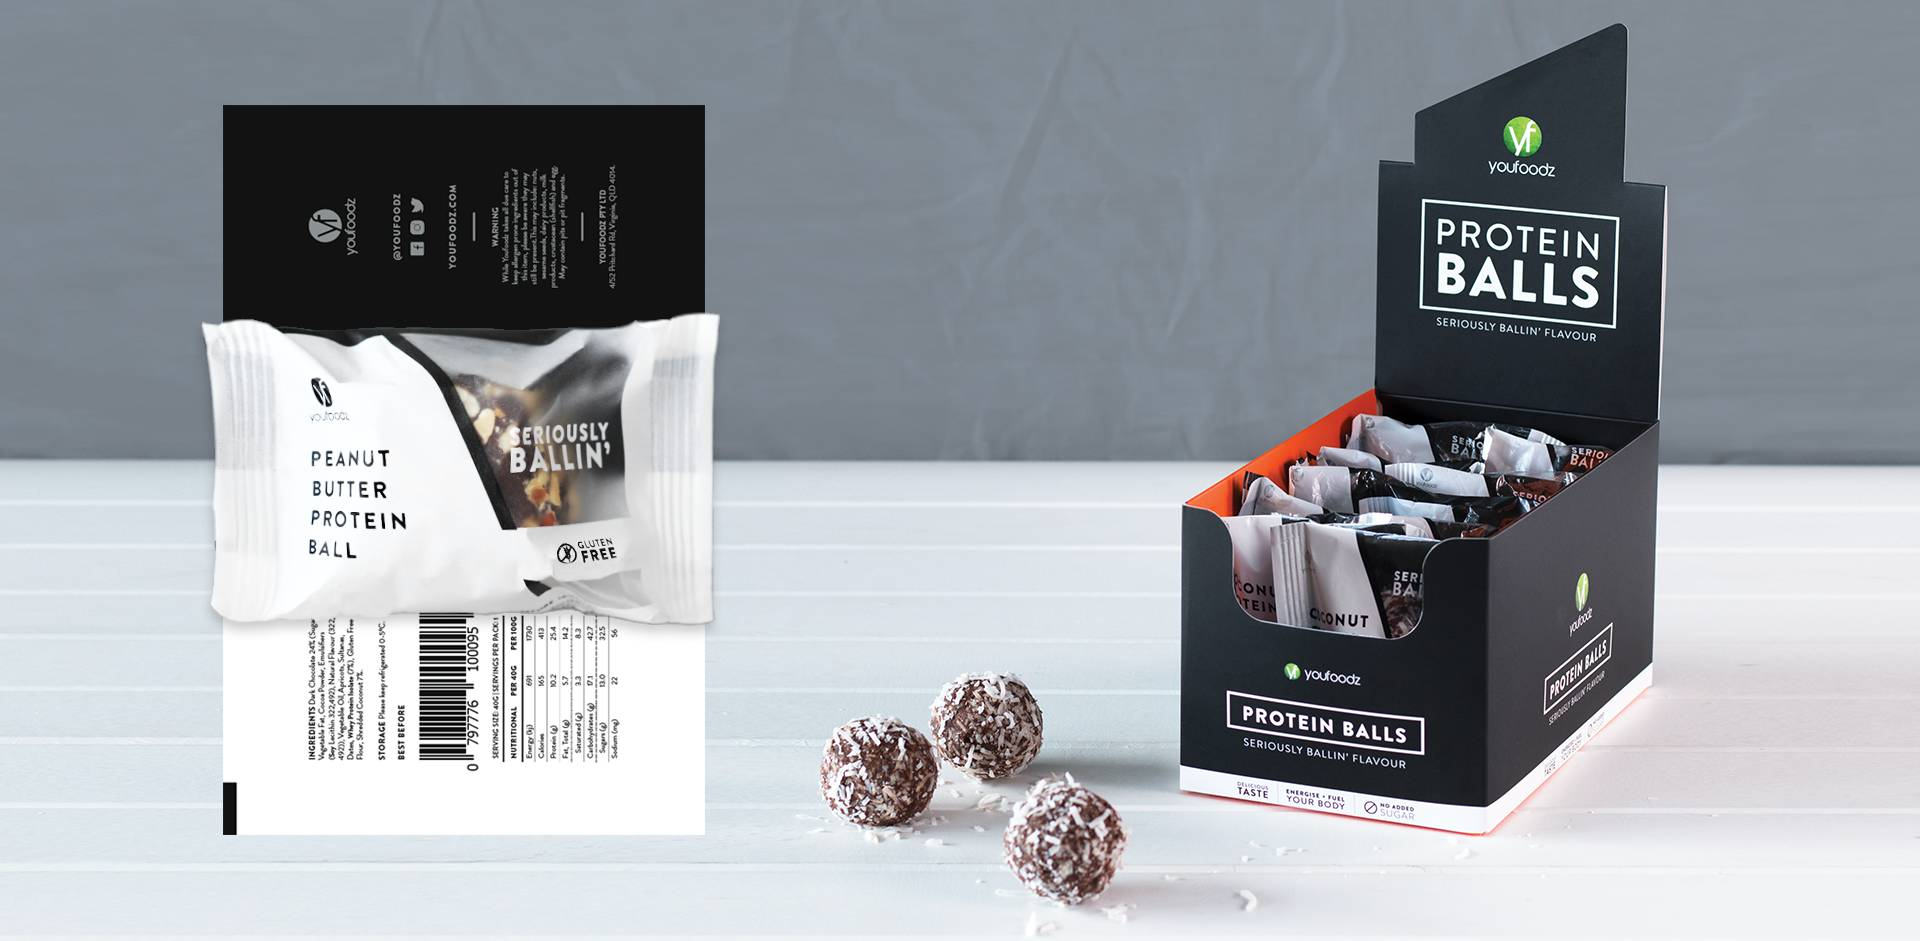 New Protein Balls Packaging Lachlan Spencer